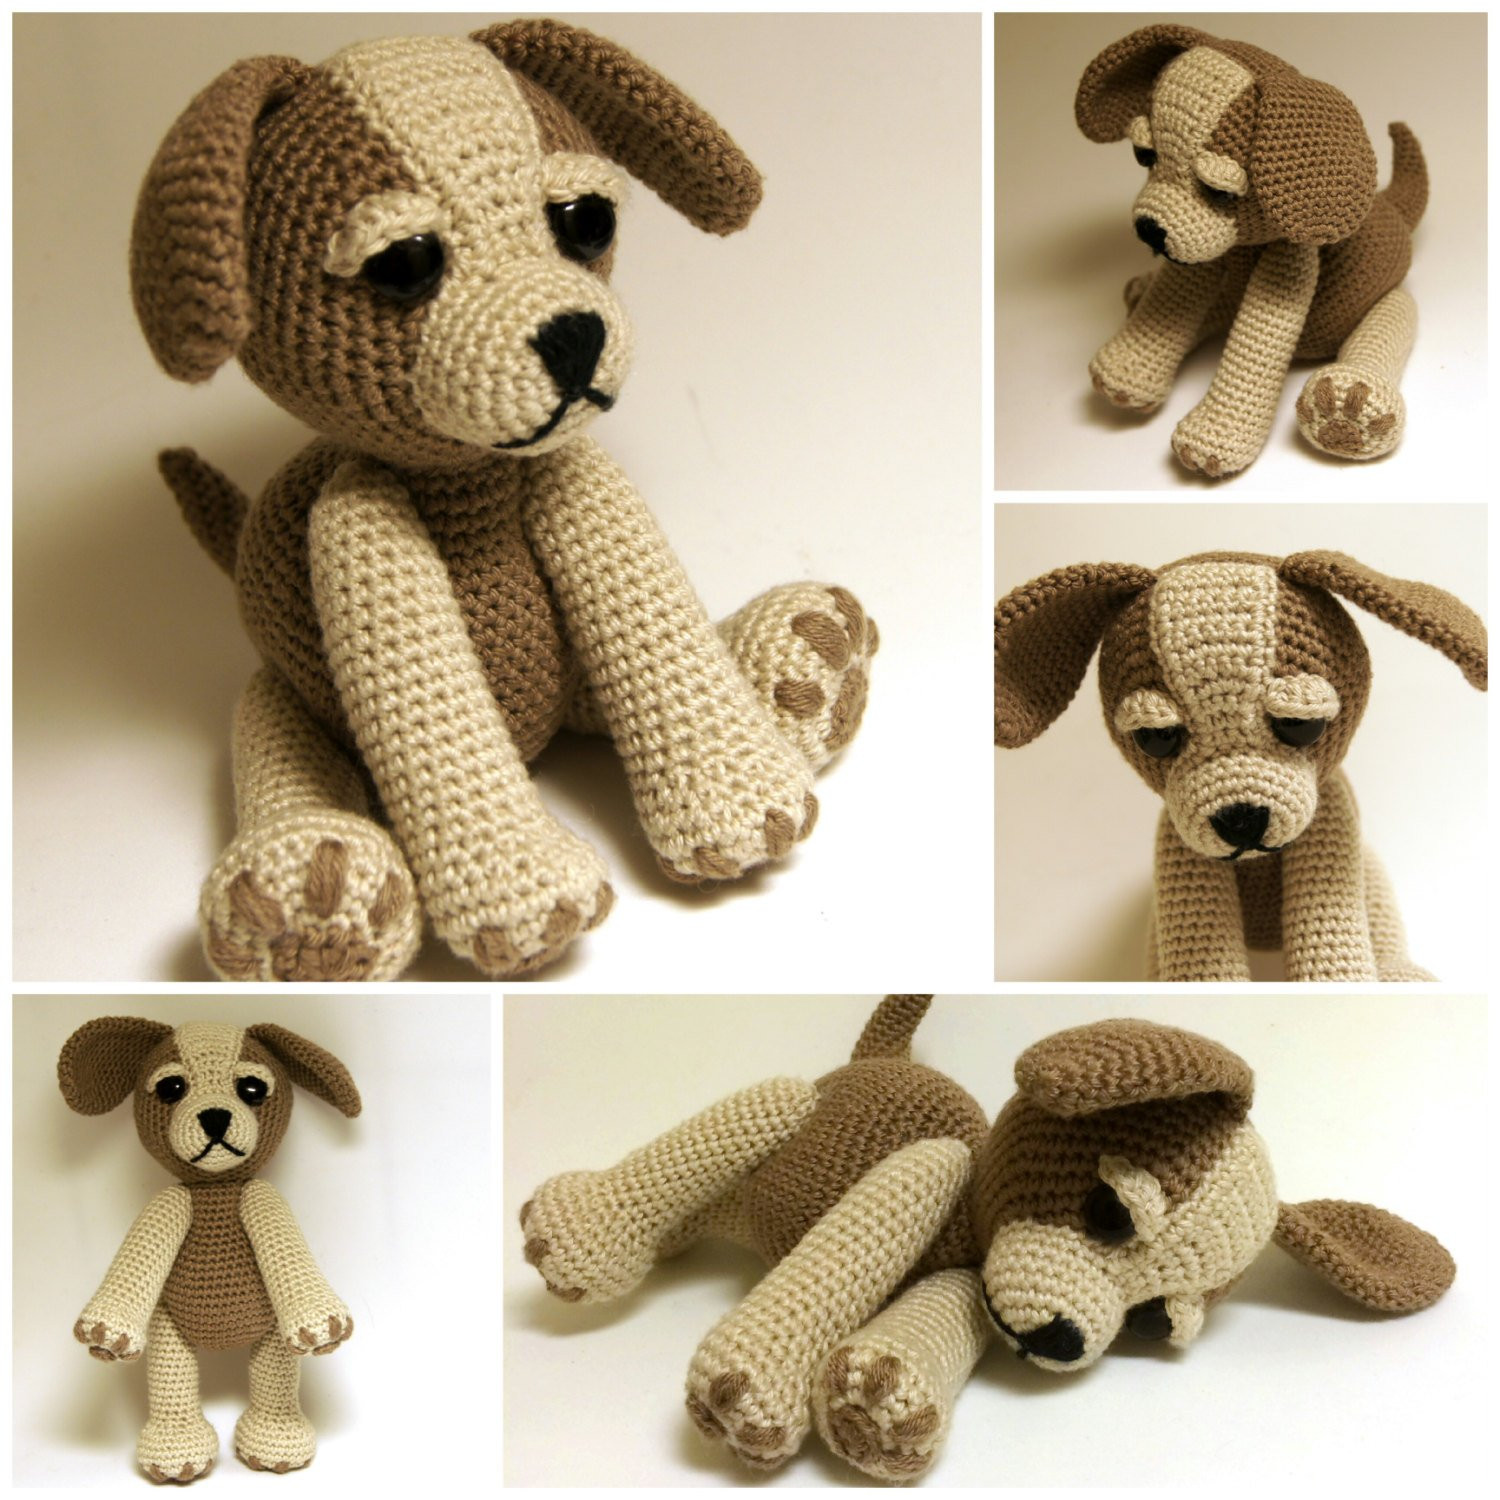 Crochet Dog New Crochet Pattern Sammy the Puppy Dog Crochet Dog Of Perfect 50 Images Crochet Dog